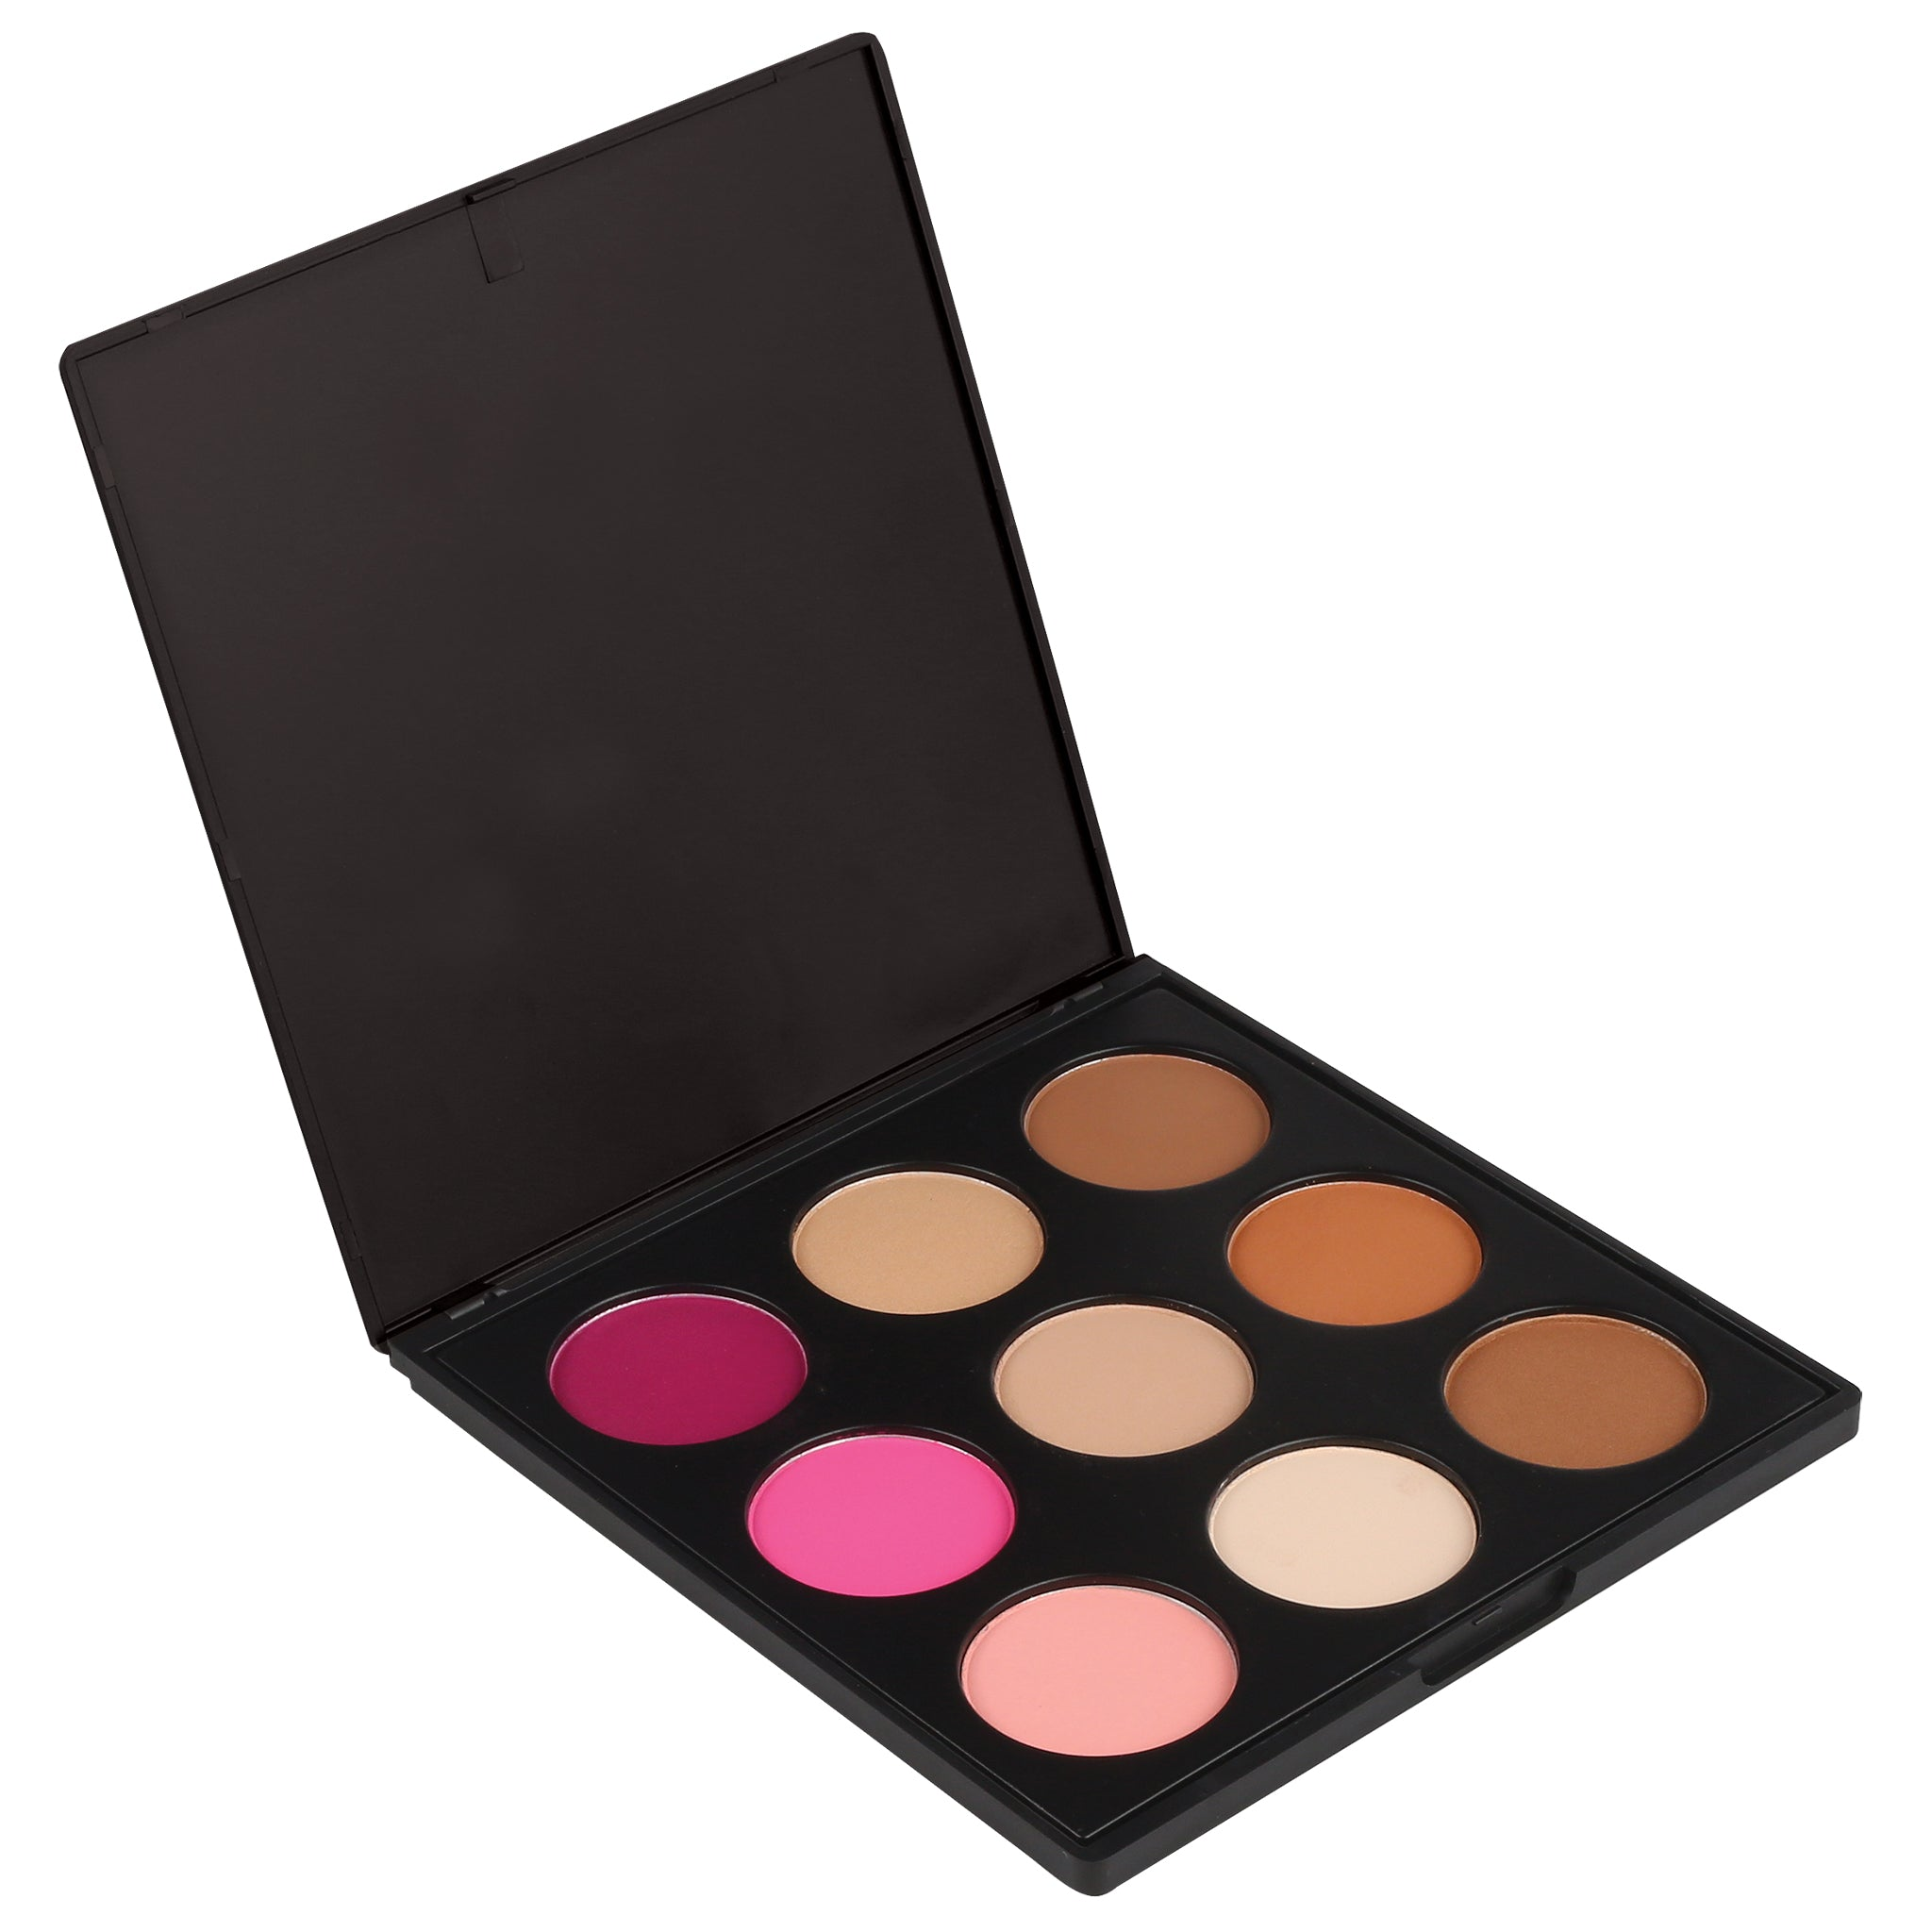 Coastal Scents coupon: Sleek Silhouette Palette